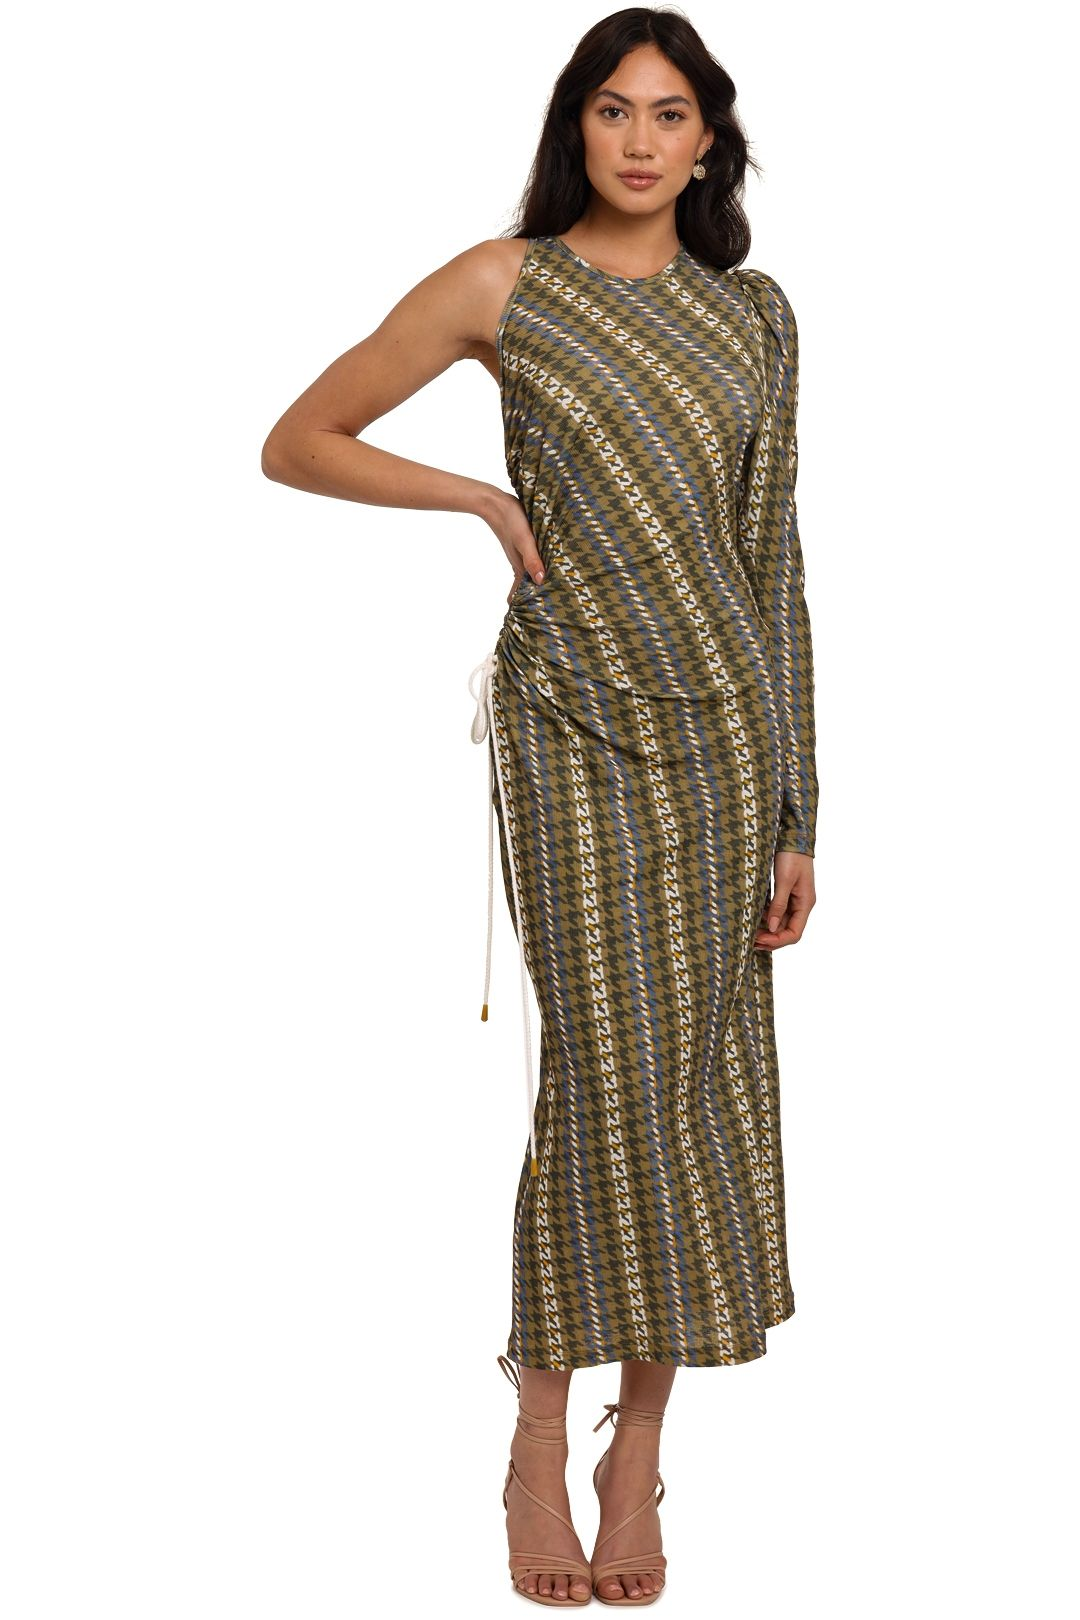 Manning Cartell Sporty Houndstooth Dress